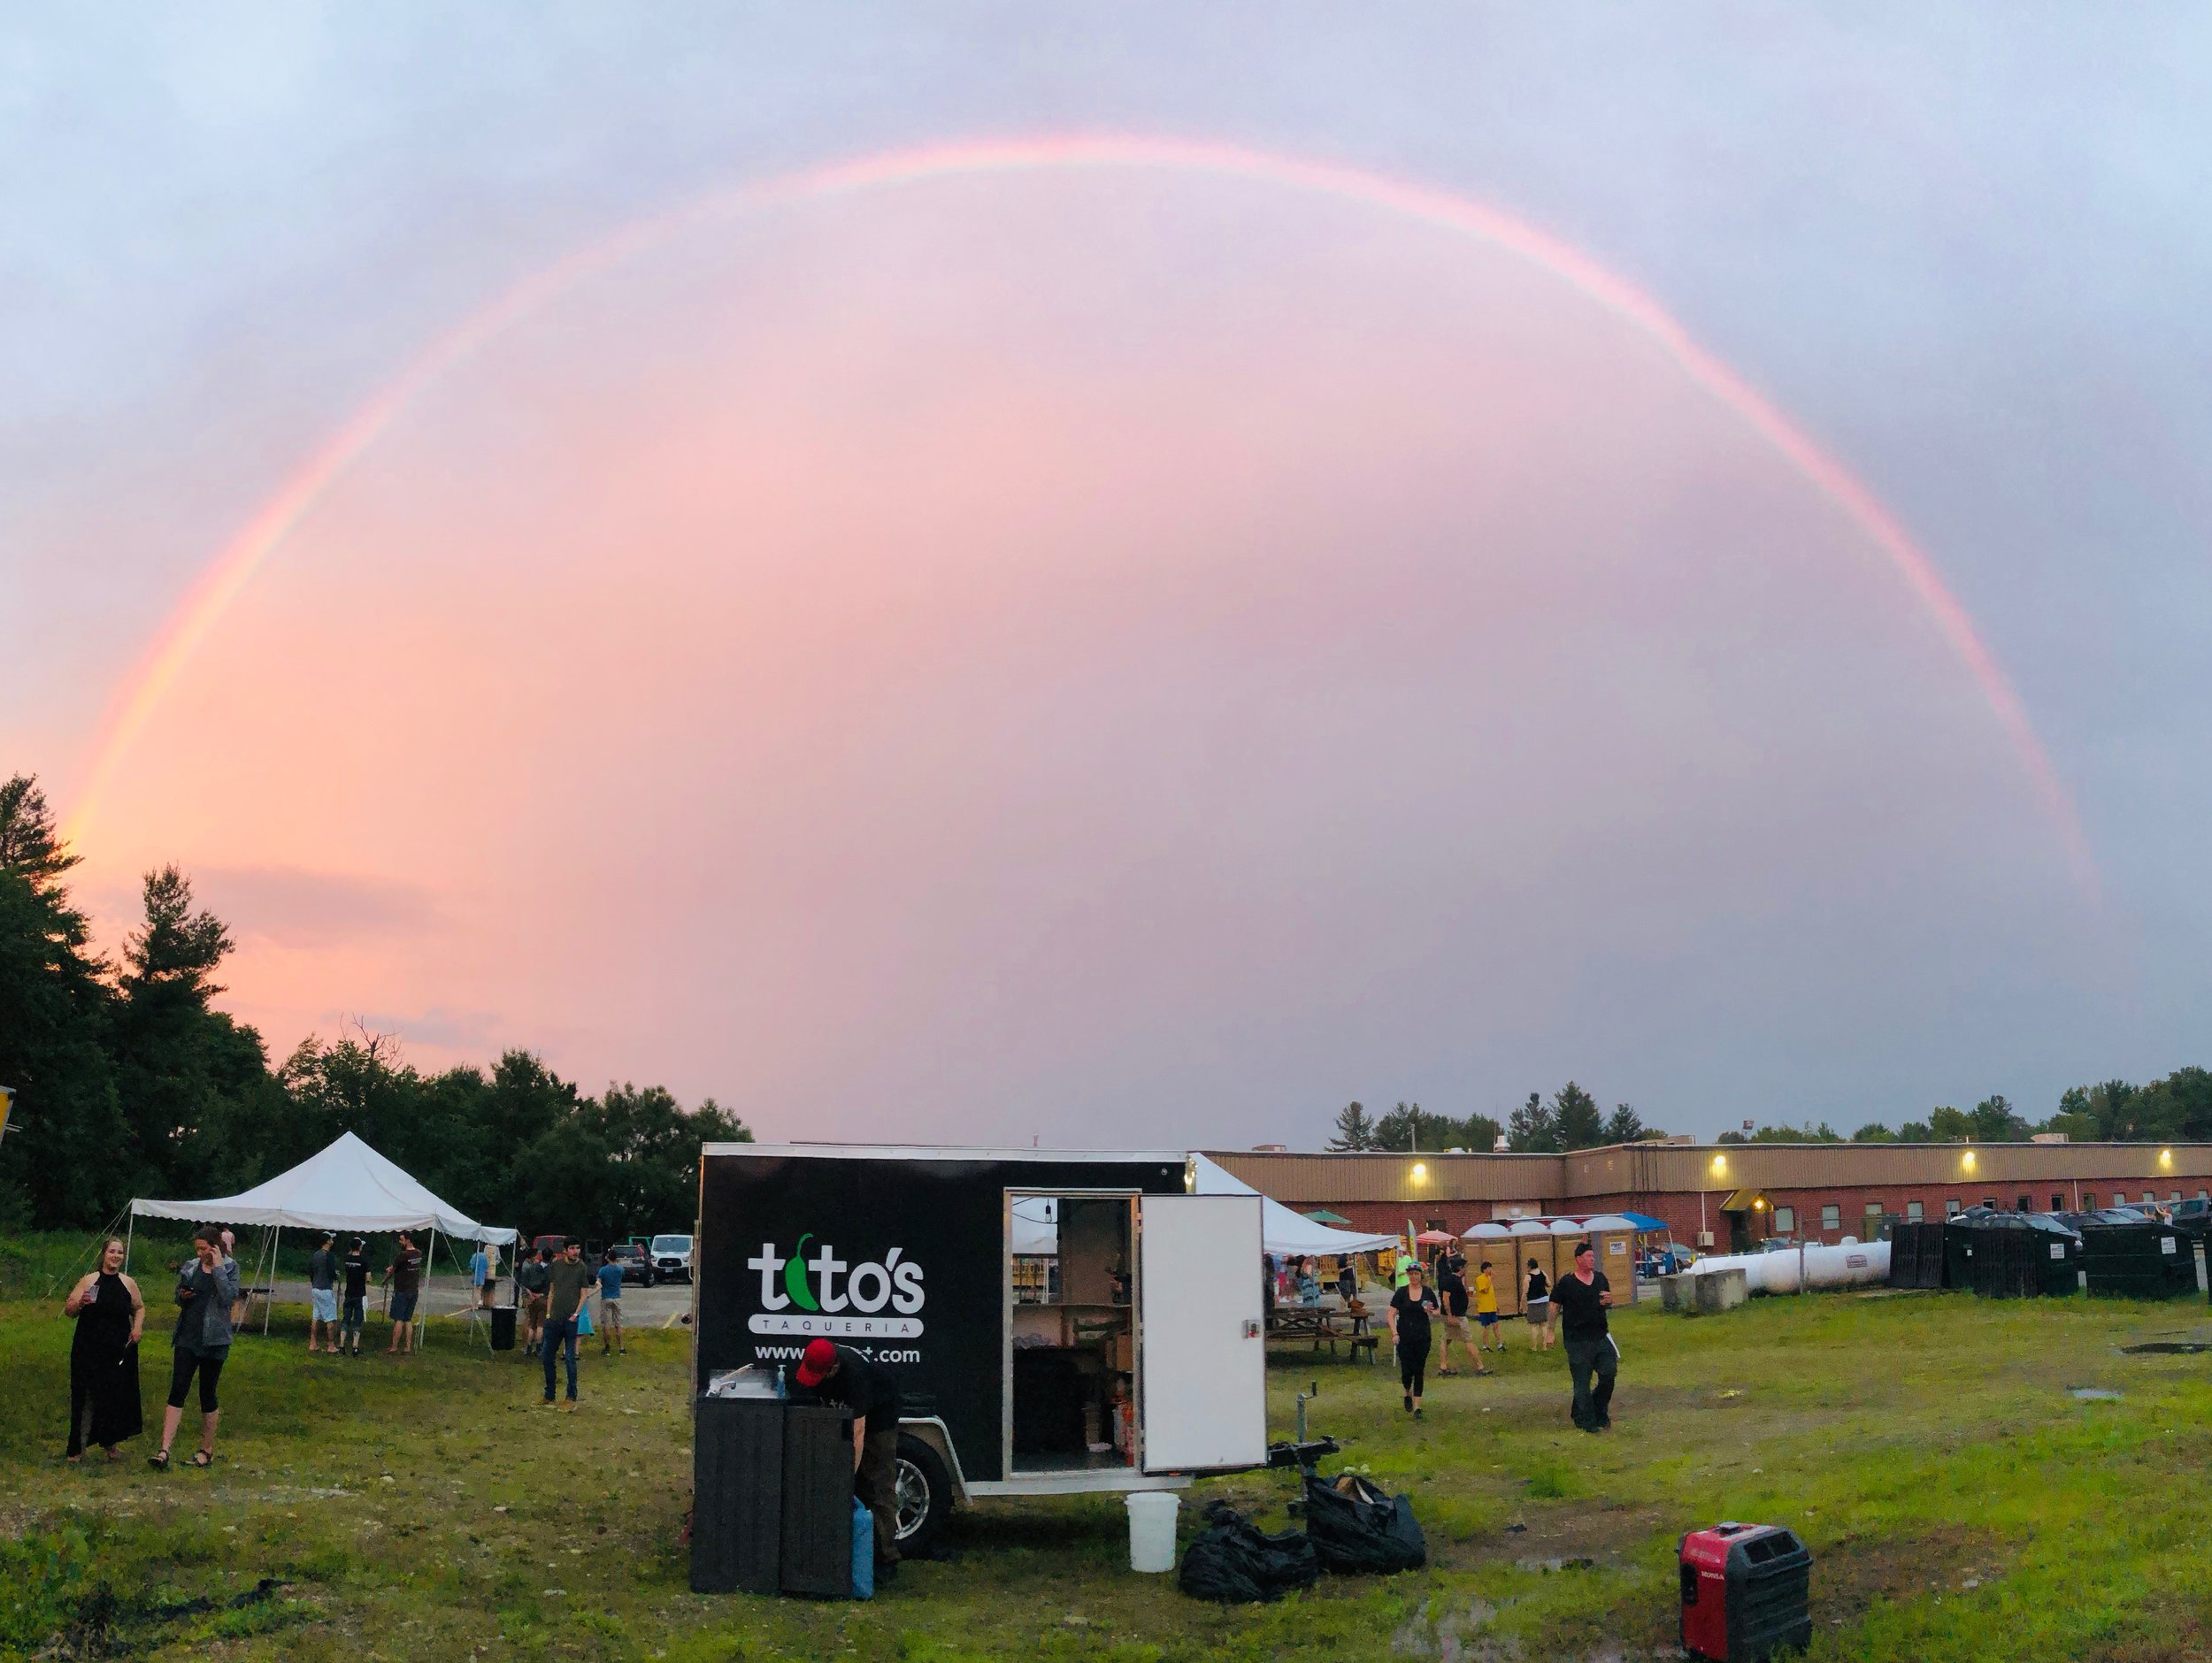 Titos Trailer Rainbow.JPG